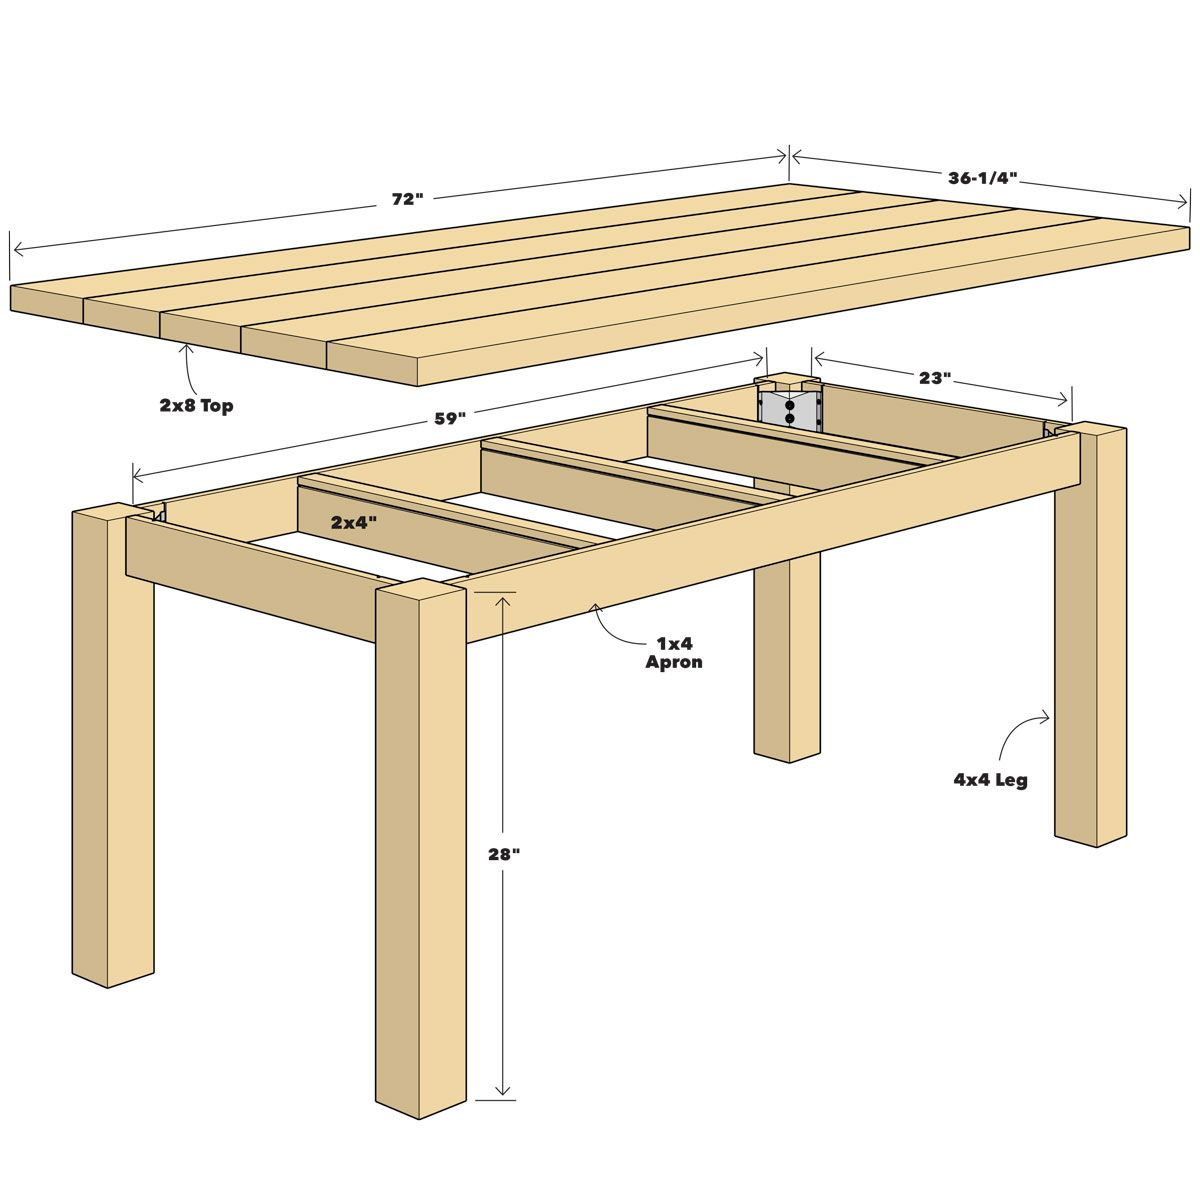 Build A Simple Reclaimed Wood Table Reclaimed Wood Projects Furniture Reclaimed Wood Table Woodworking Furniture